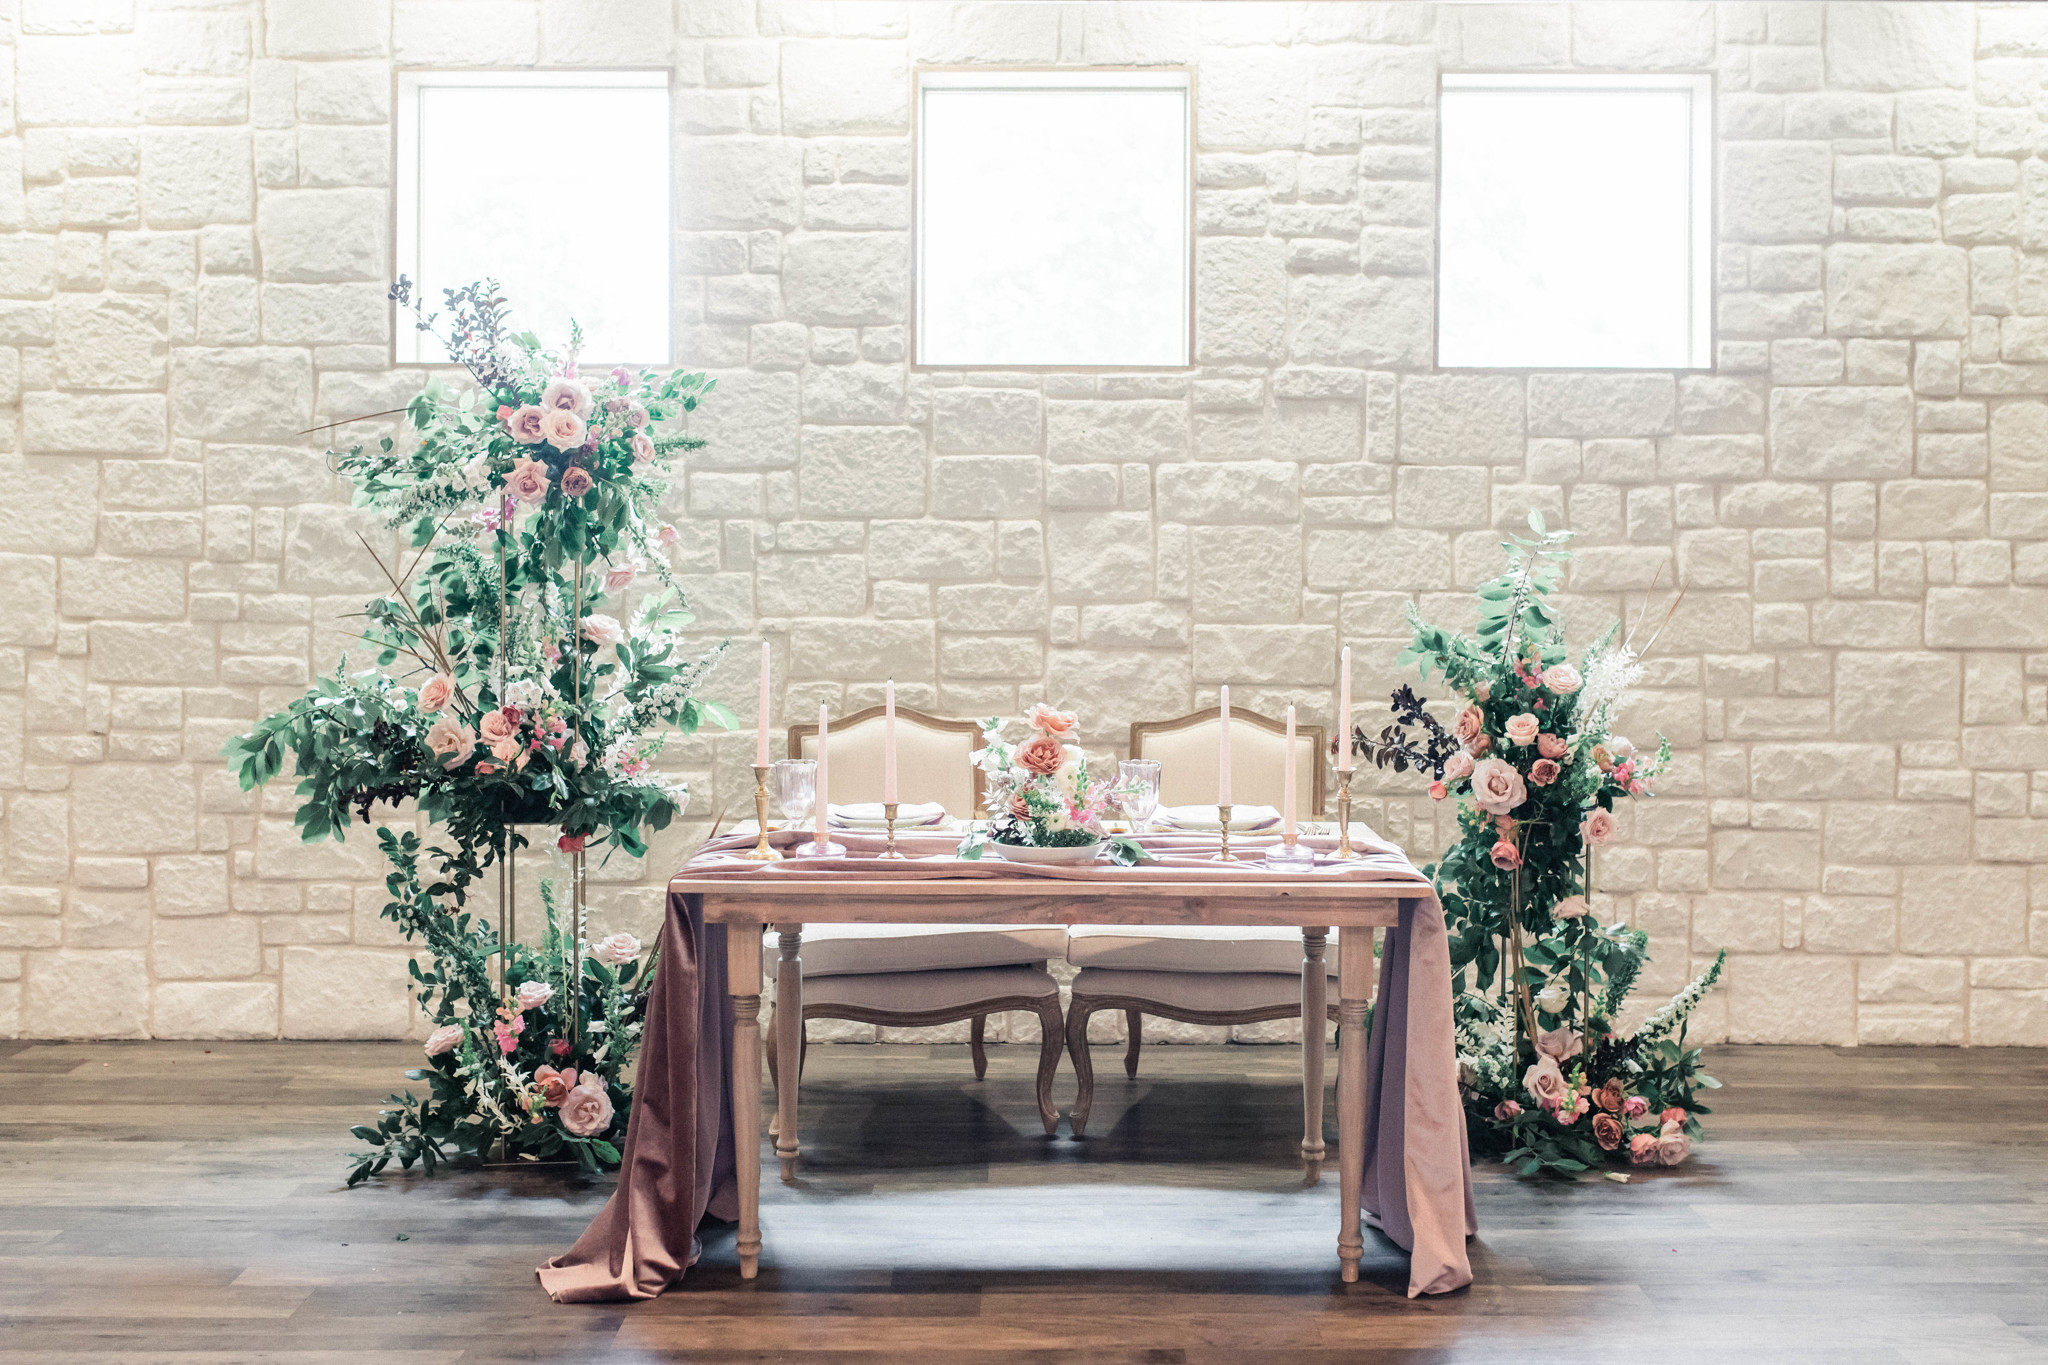 Wedding sweetheart table: Whimsical mauve wedding inspiration on Alexa Kay Events. See more romantic wedding ideas at alexakayevents.com!